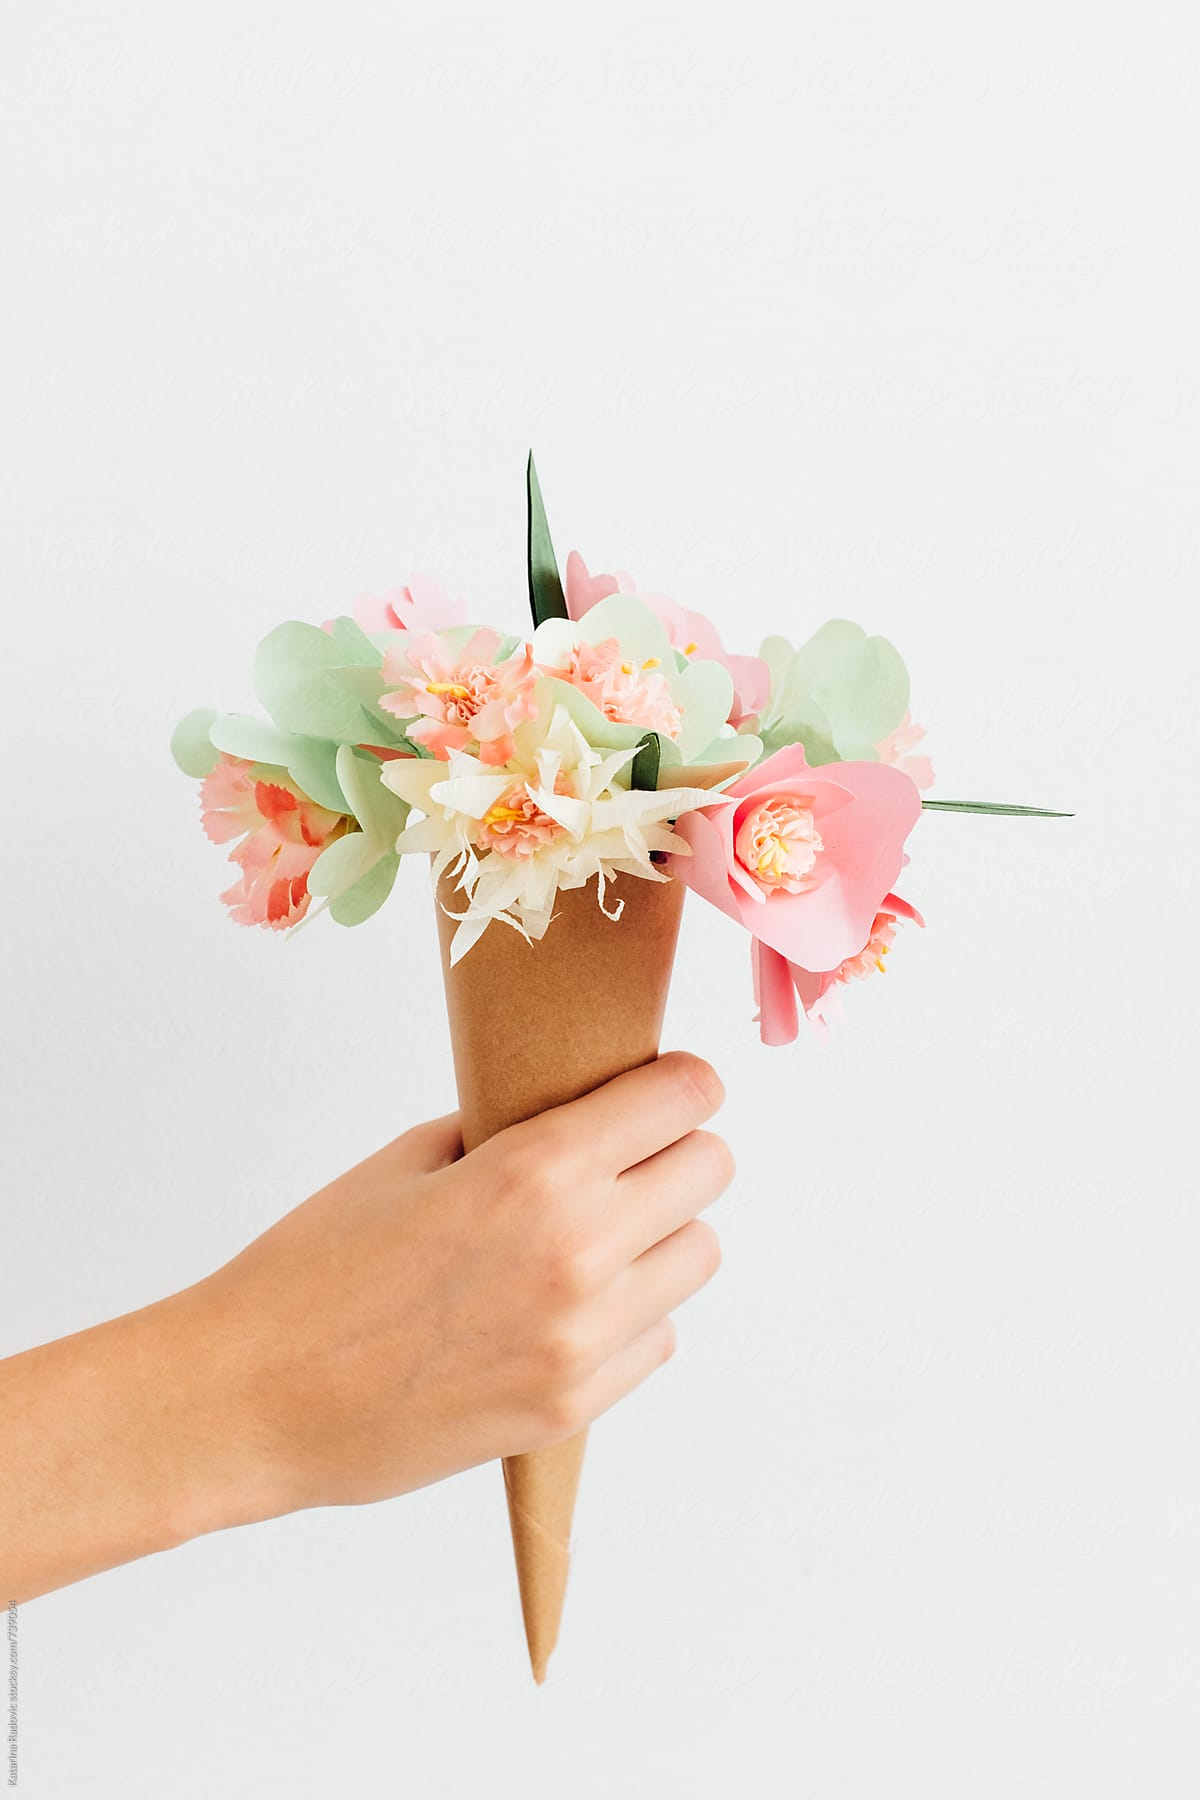 Female Hand Holding Paper Flowers Bouquette By Katarina Radovic